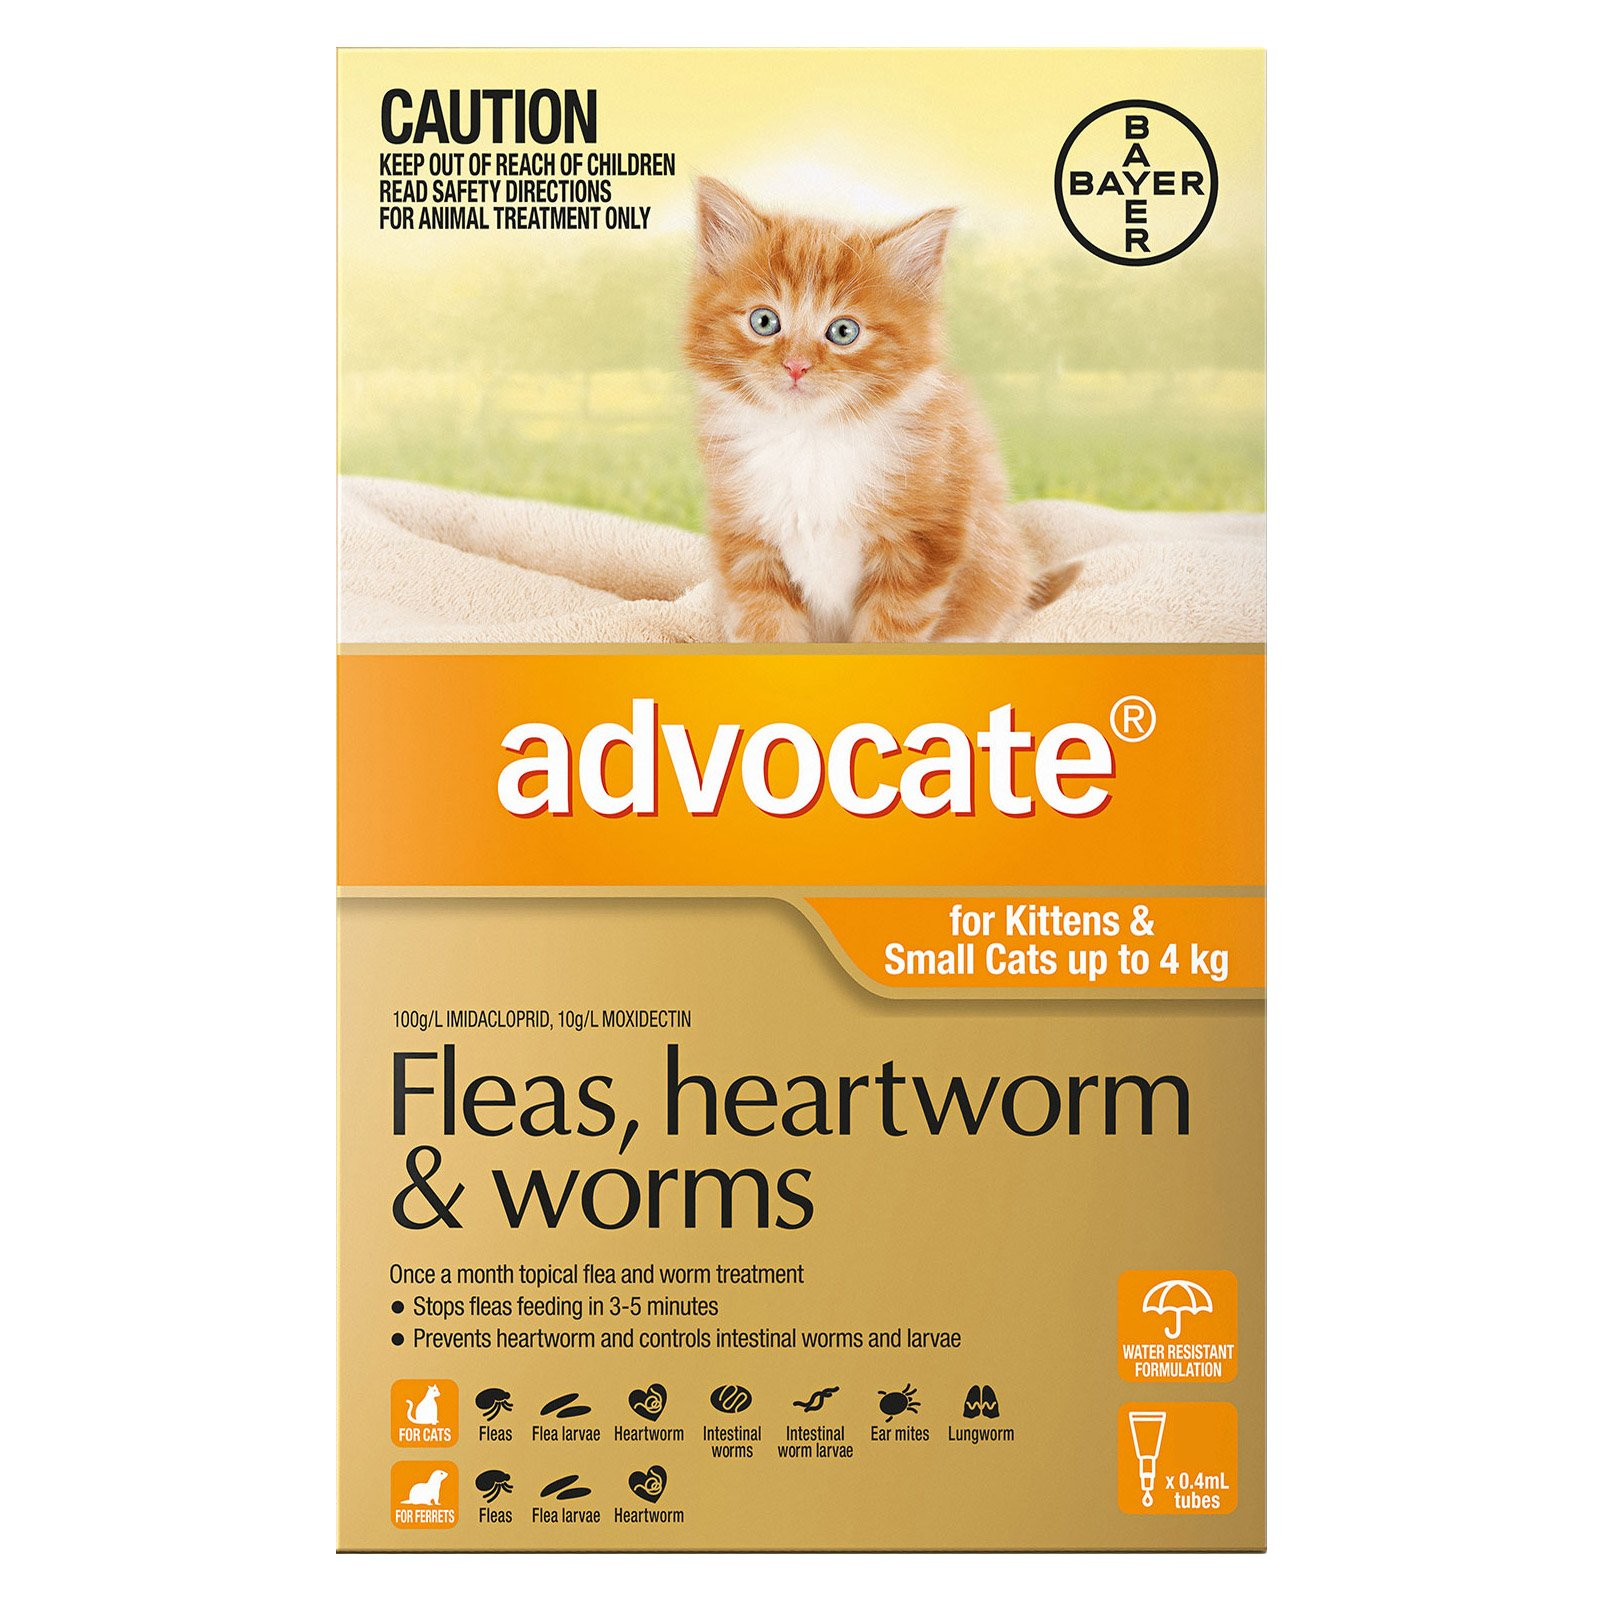 Advocate For Kittens & Small Cats Up To 4Kg (Orange)